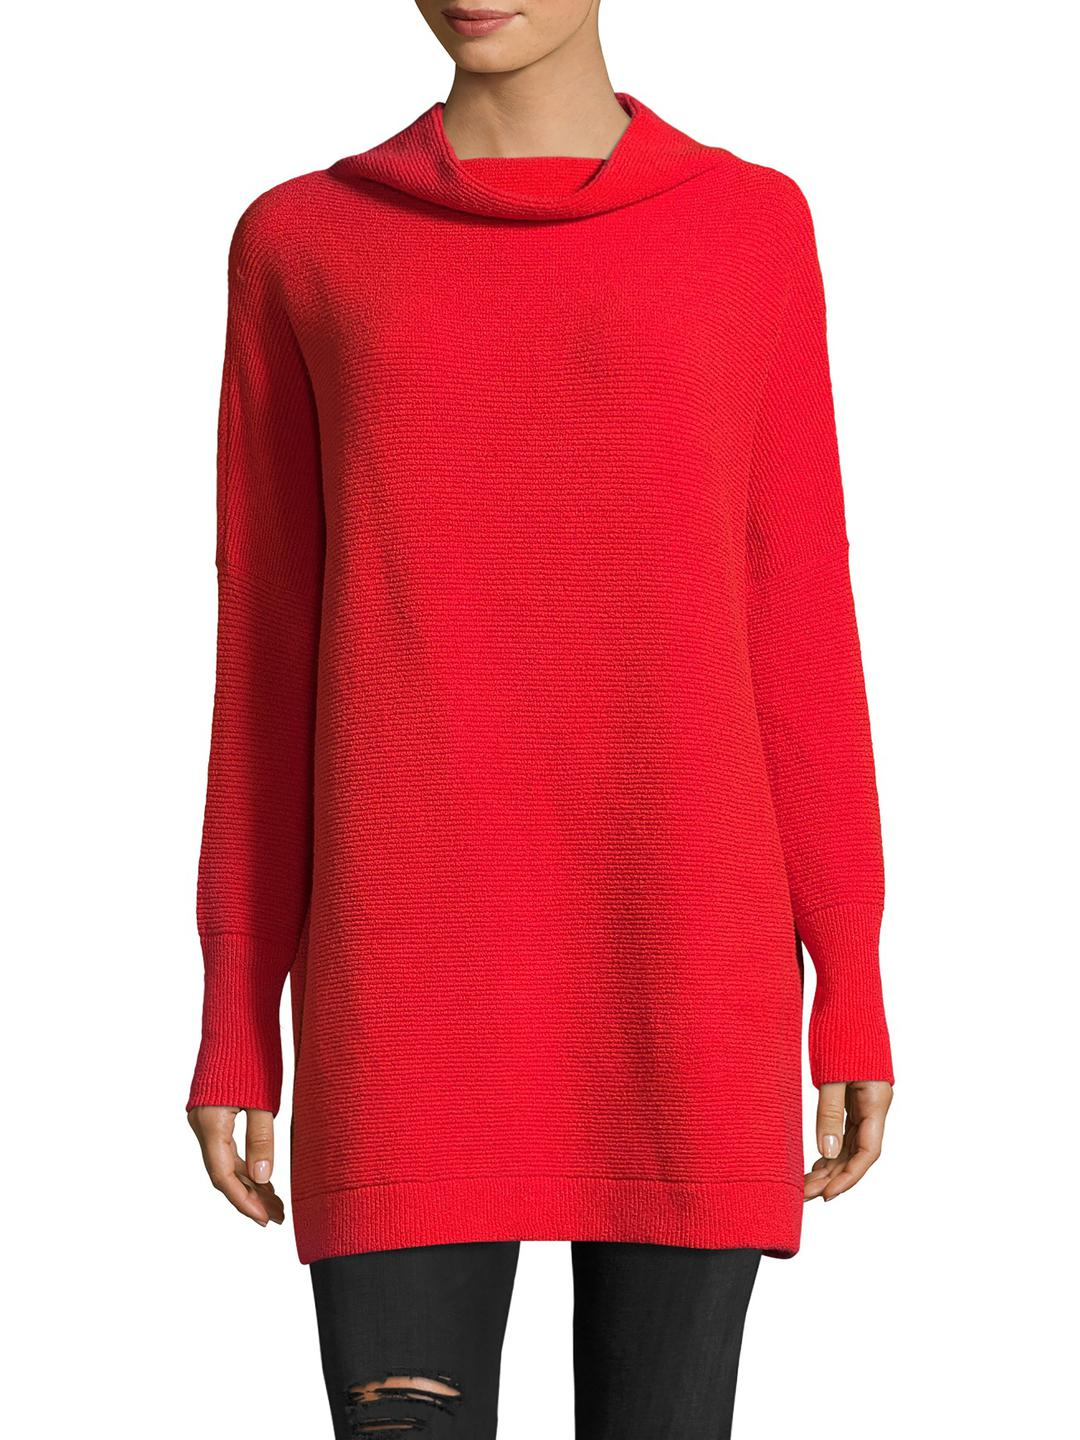 Free people Ribbed Knit Tunic in Red | Lyst